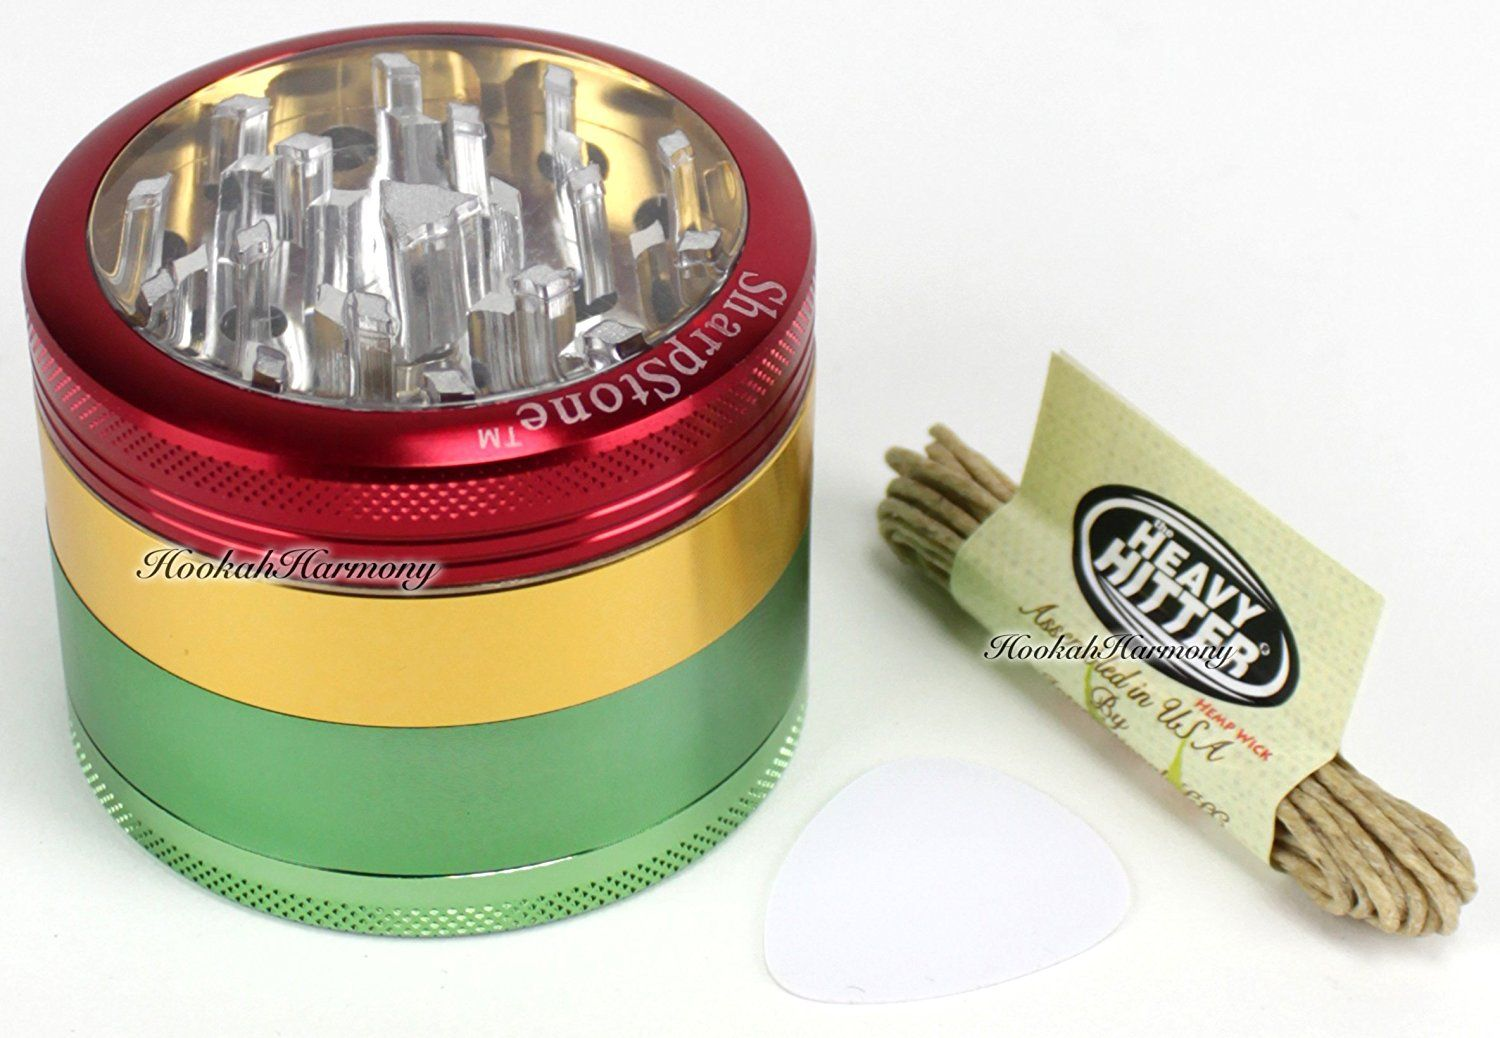 Sharpstone Grinder 2 5 Inch 4 Piece Clear Glass Magnetic Top Metal Pollen Screen Tobacco Spice Herb Grinder Crusher Herb Grinder Sharpstone Grinder Sharpstone